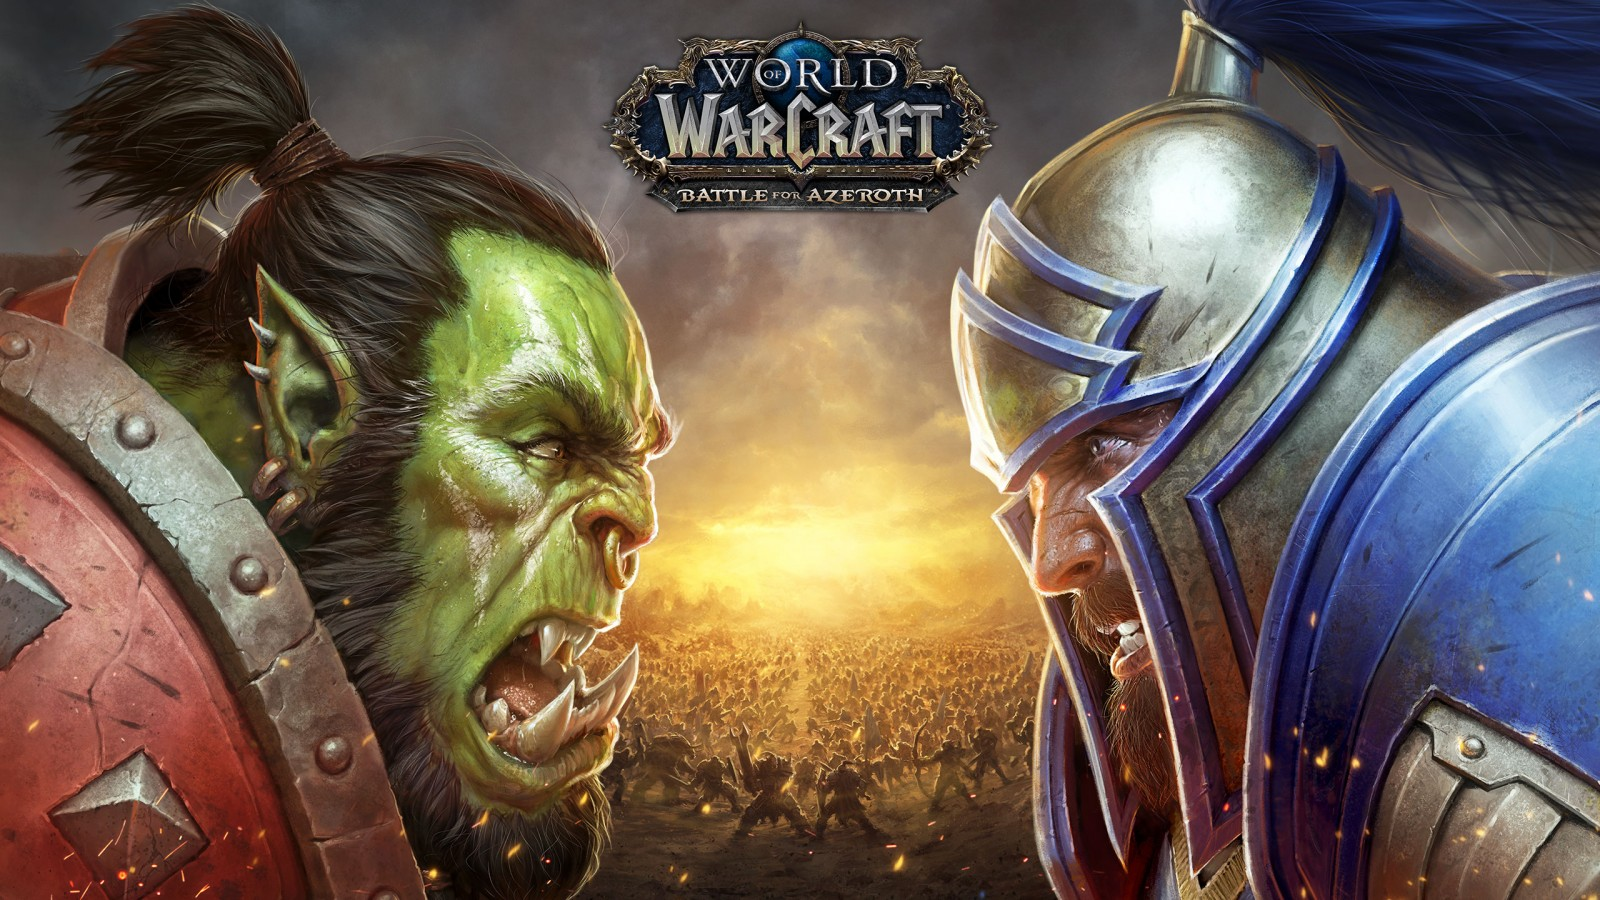 1600x900 Hd Wallpapers Cars World Of Warcraft Battle For Azeroth 2018 Wallpapers Hd